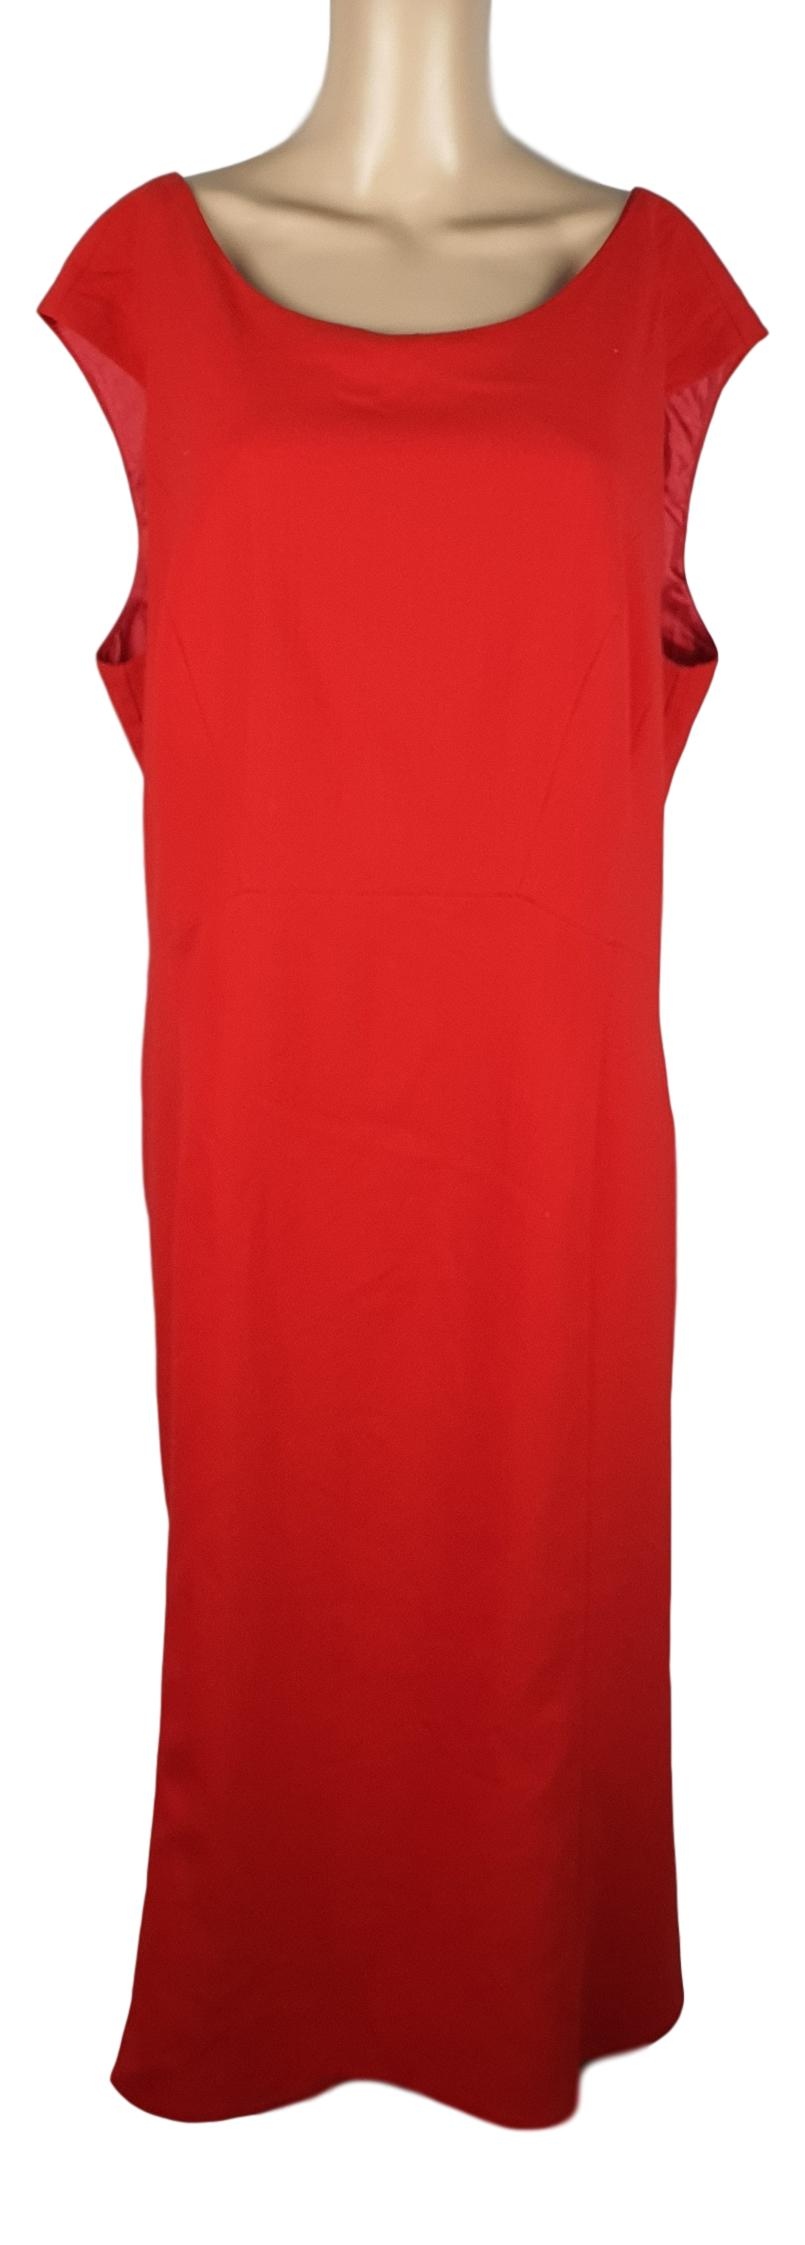 Long Tall Sally - Taille 50